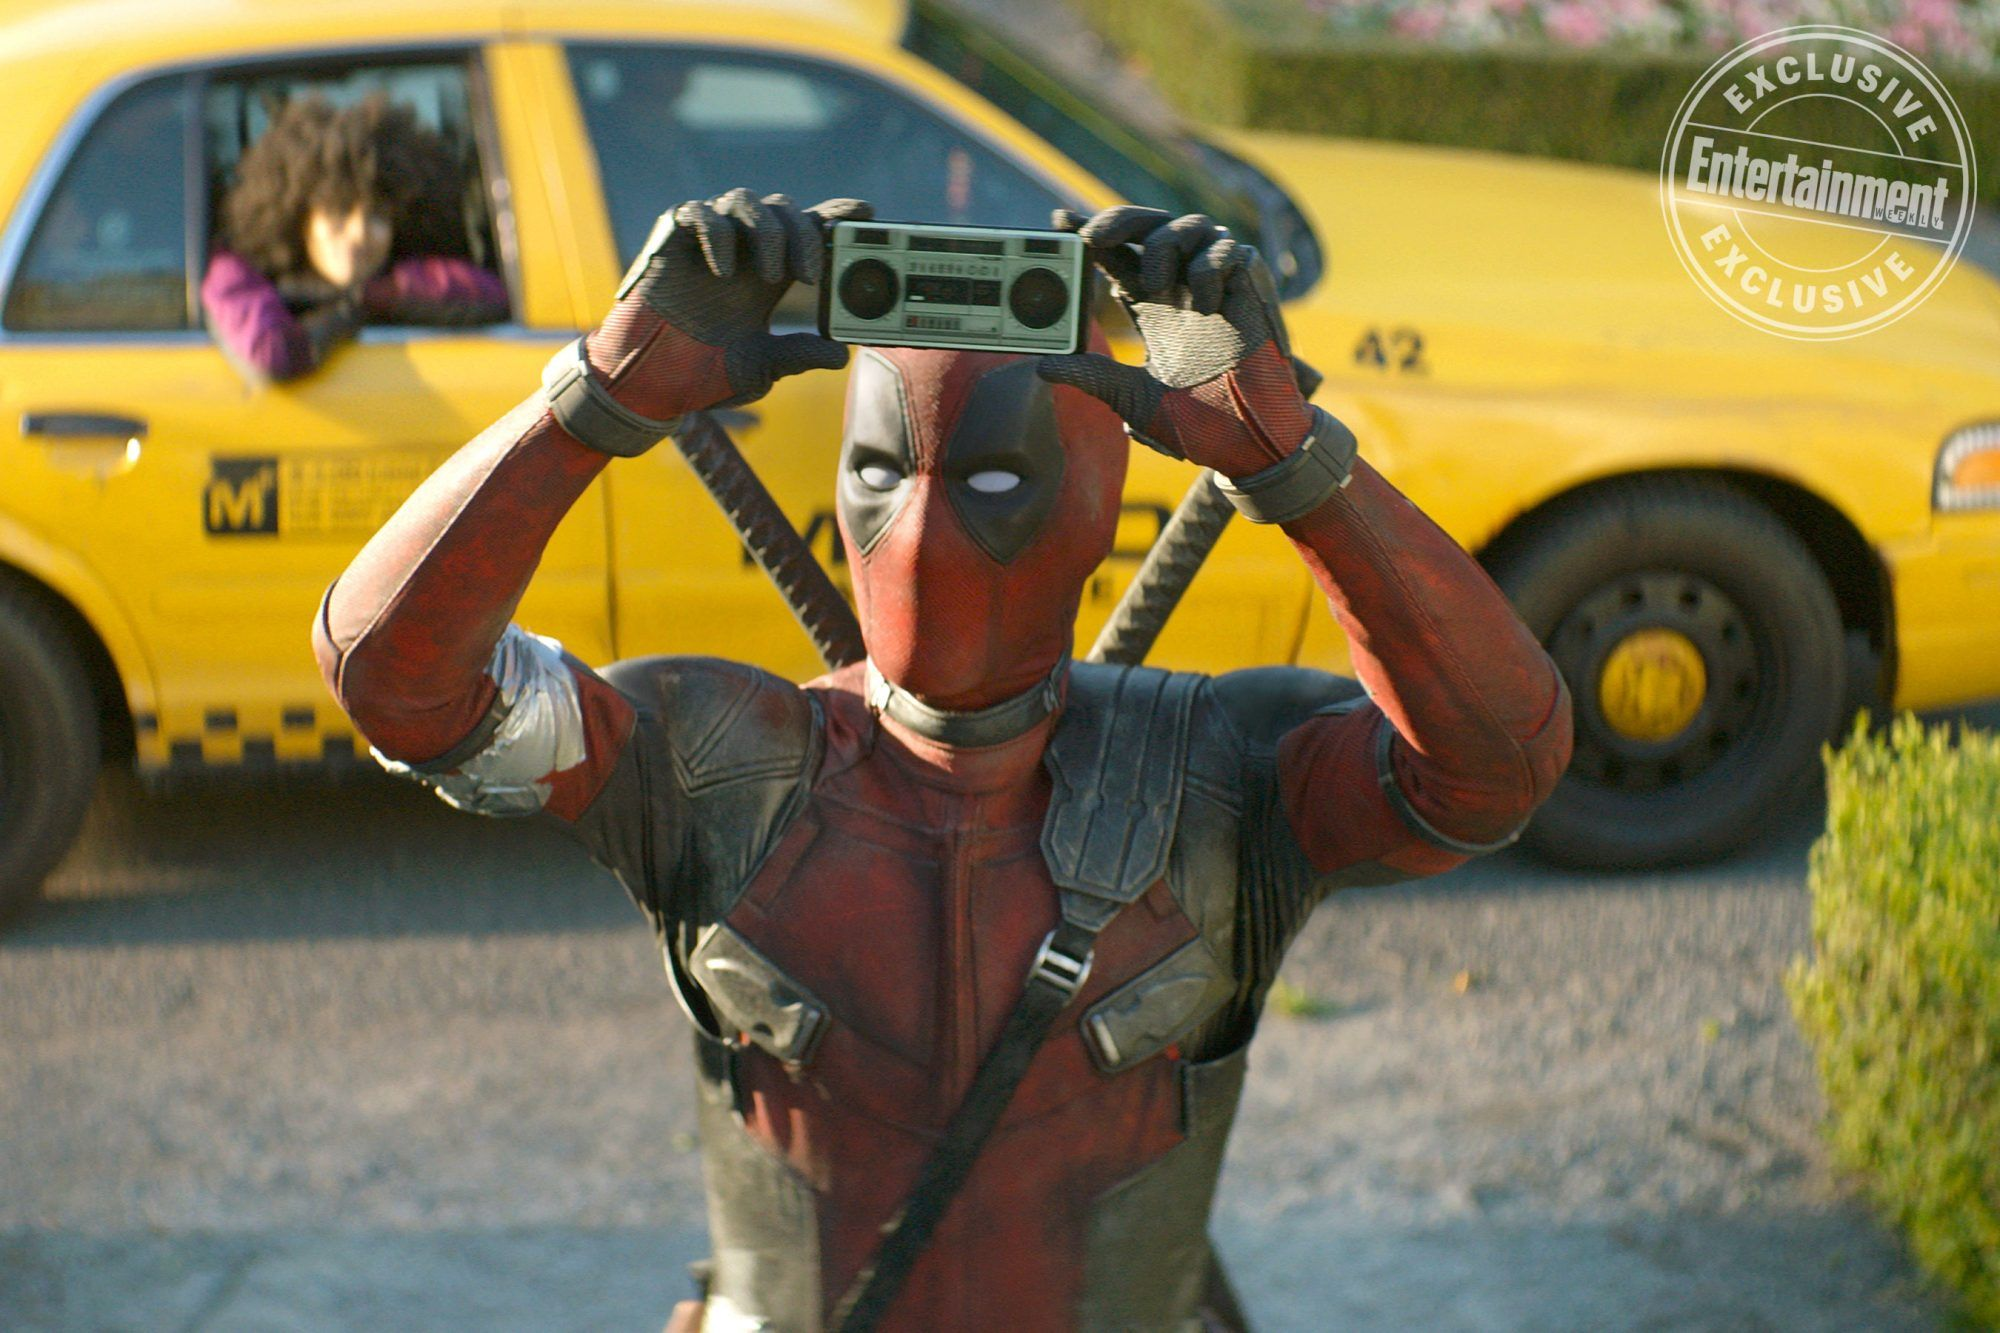 Exclusive Deadpool 2 Pays Homage To Say Anything In New Image Deadpool Comic Book Movies Film Journal